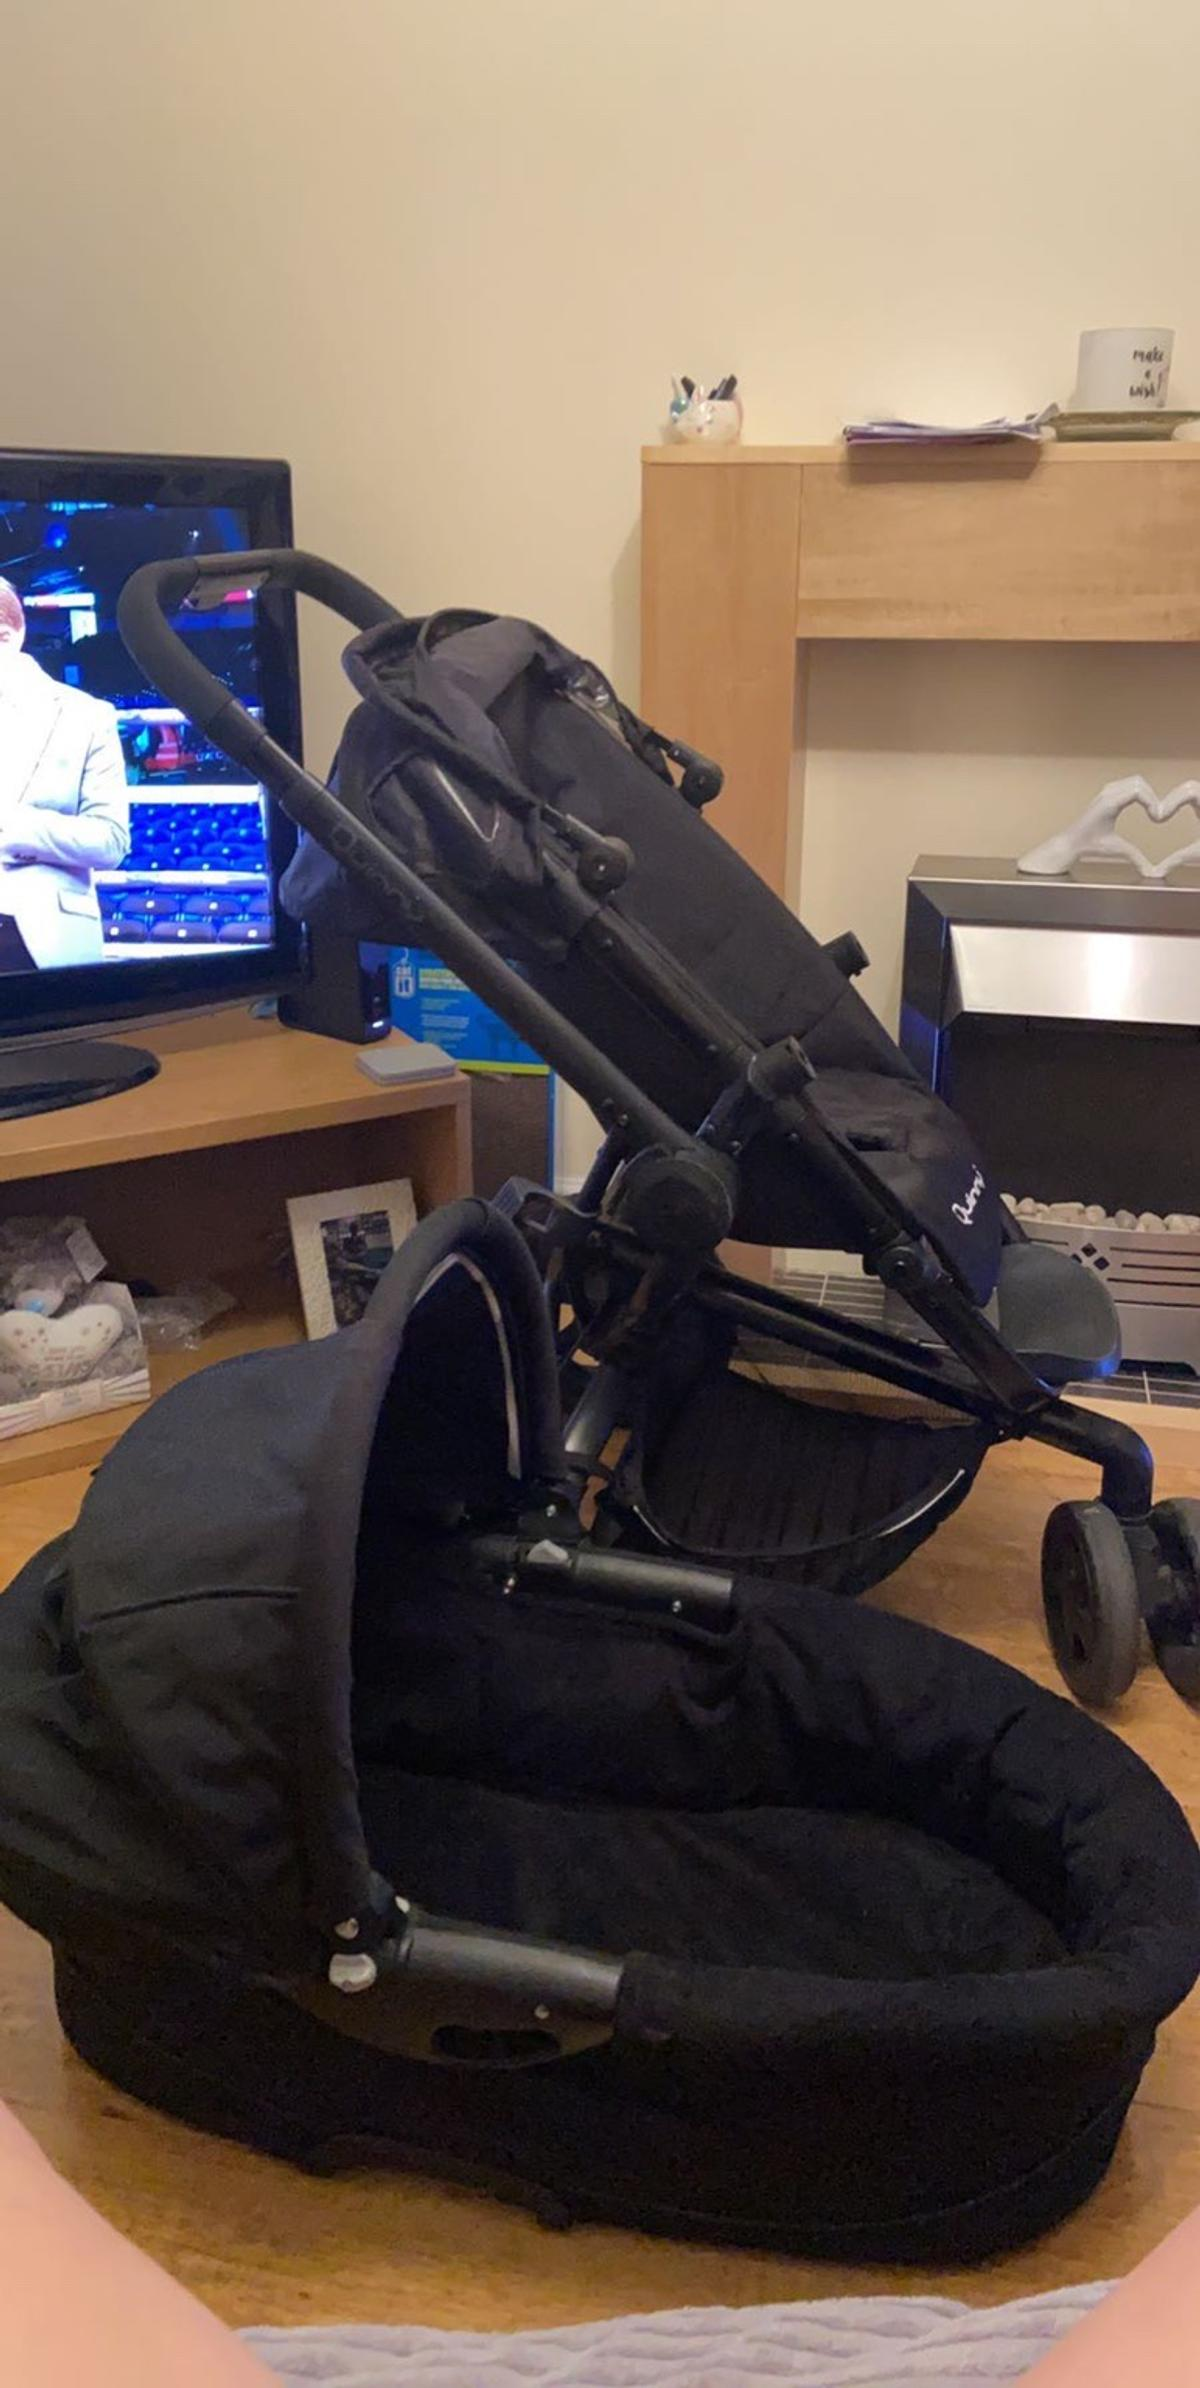 Quinny dreami pram comes with foot muff, shopping basket, extra insert and large carrycot. Good condition. Will deliver to local area.